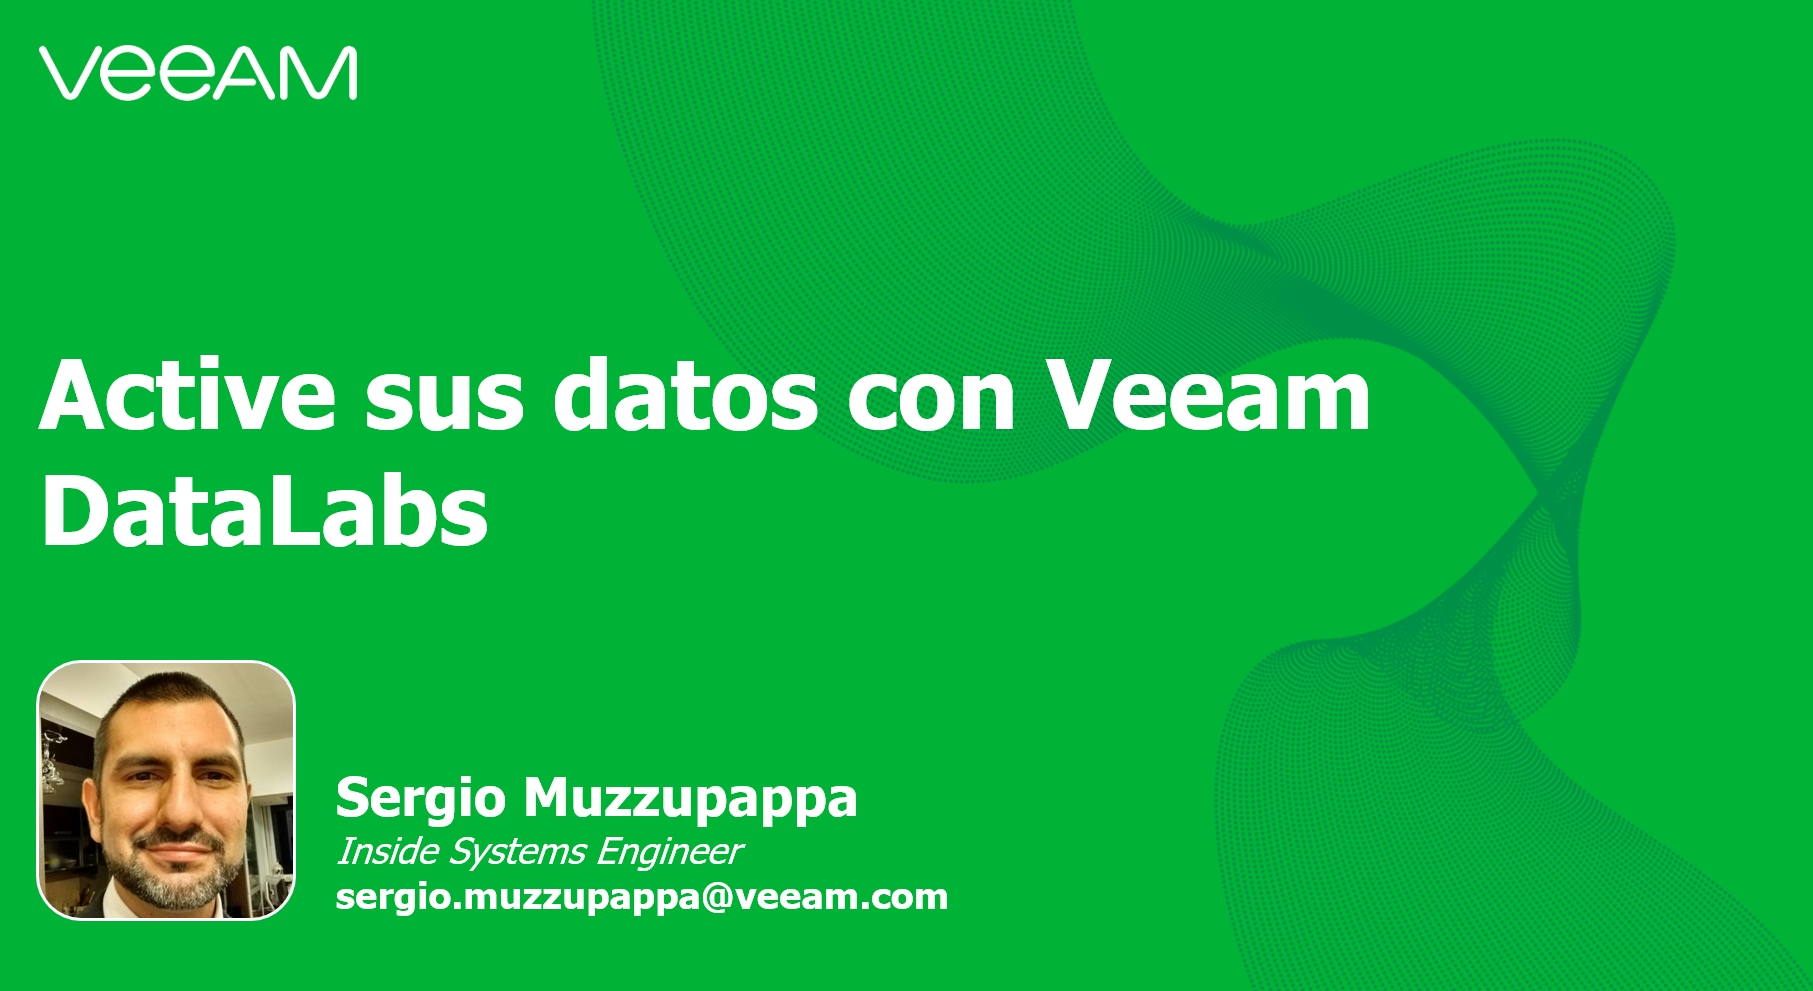 Active sus datos con Veeam DataLabs